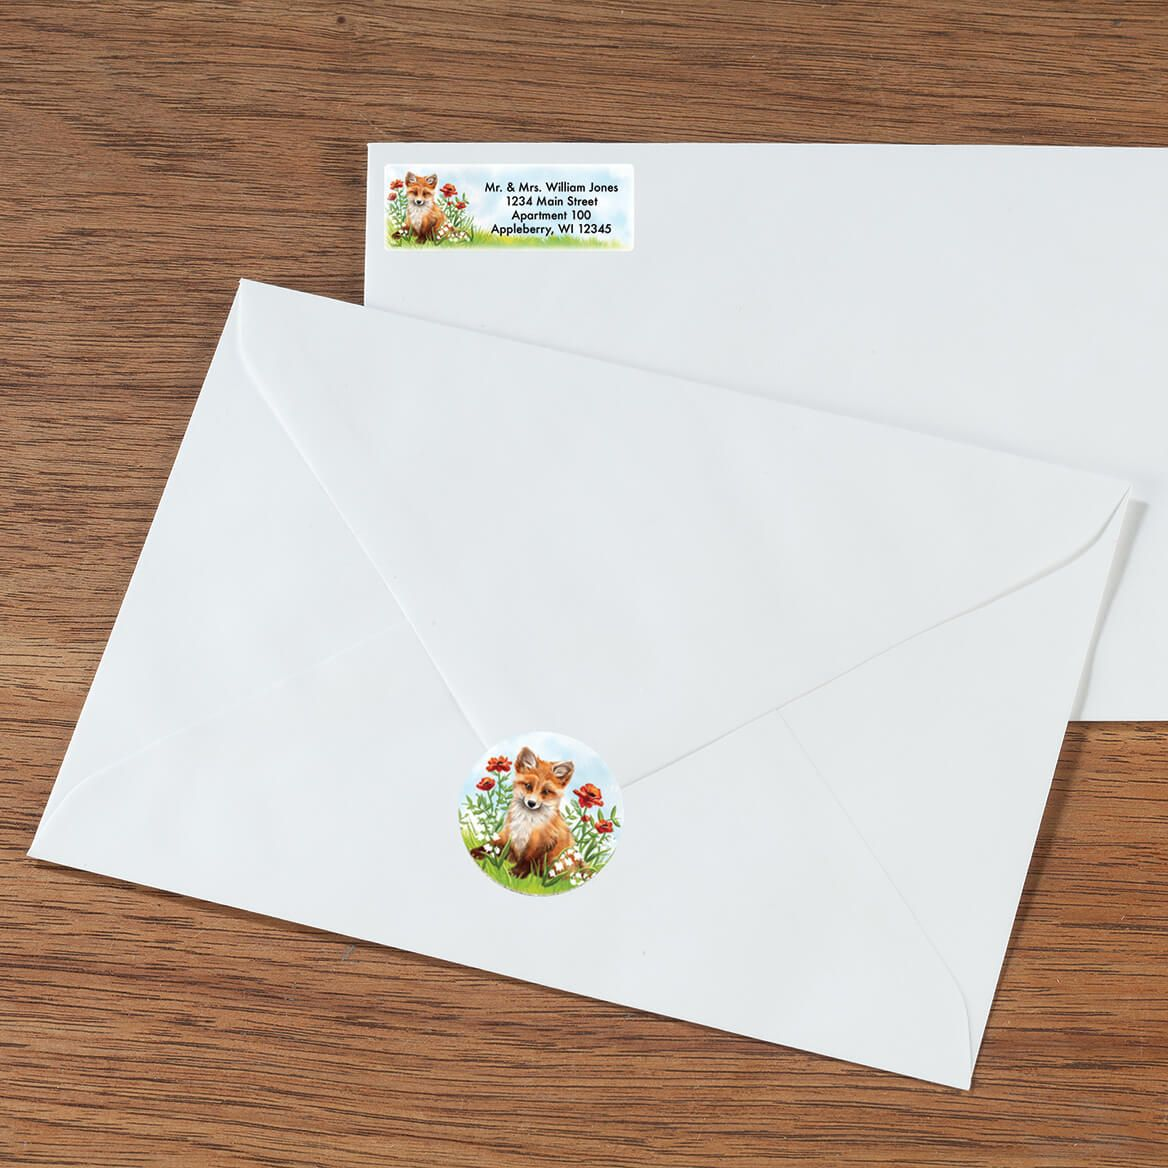 Personalized Baby Animals Labels & Envelope Seals 60-365592